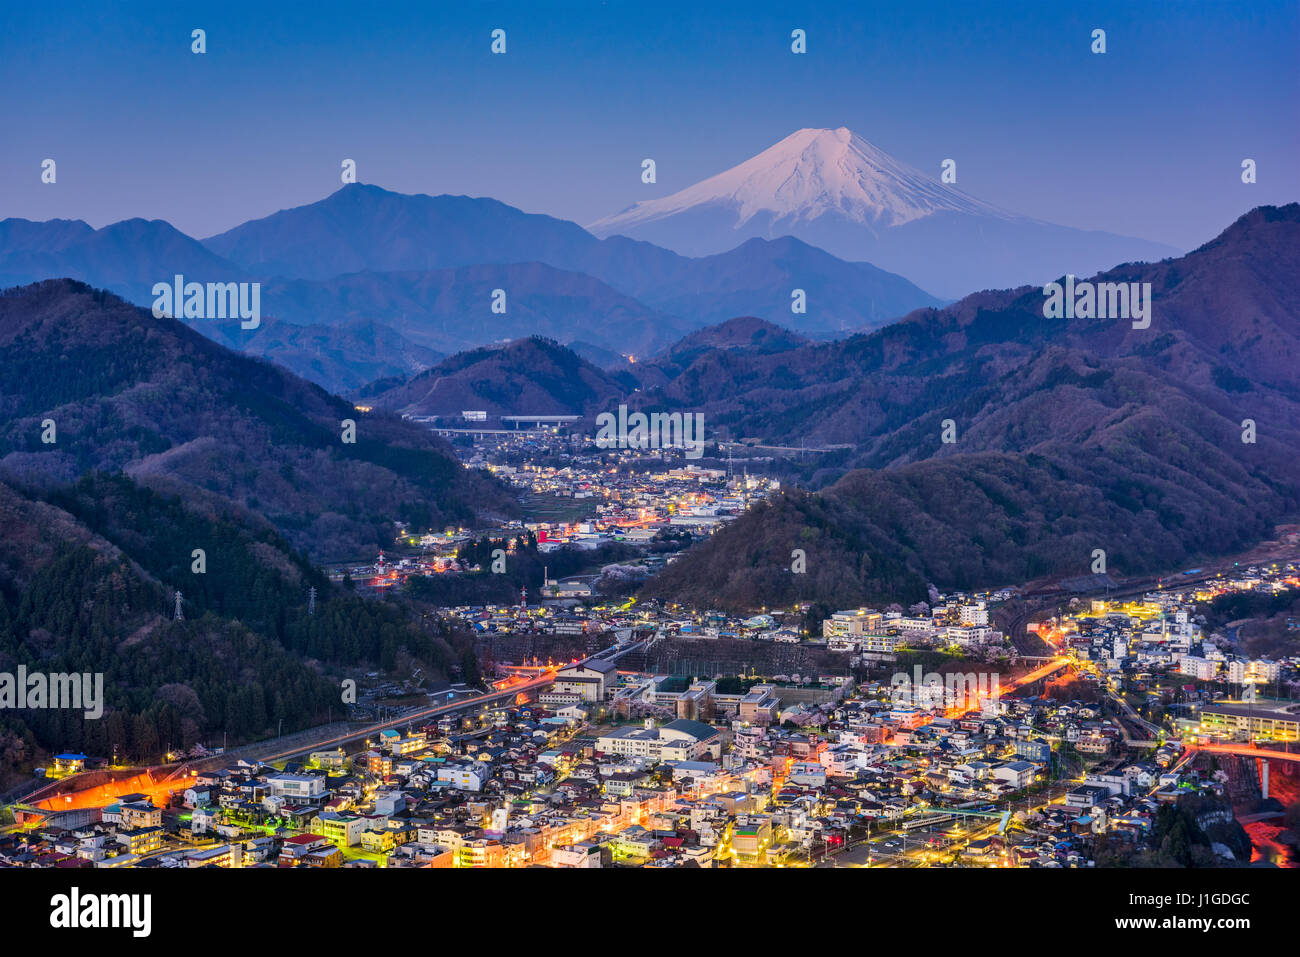 Otsuki, Japan Skyline with Mt. Fuji. - Stock Image